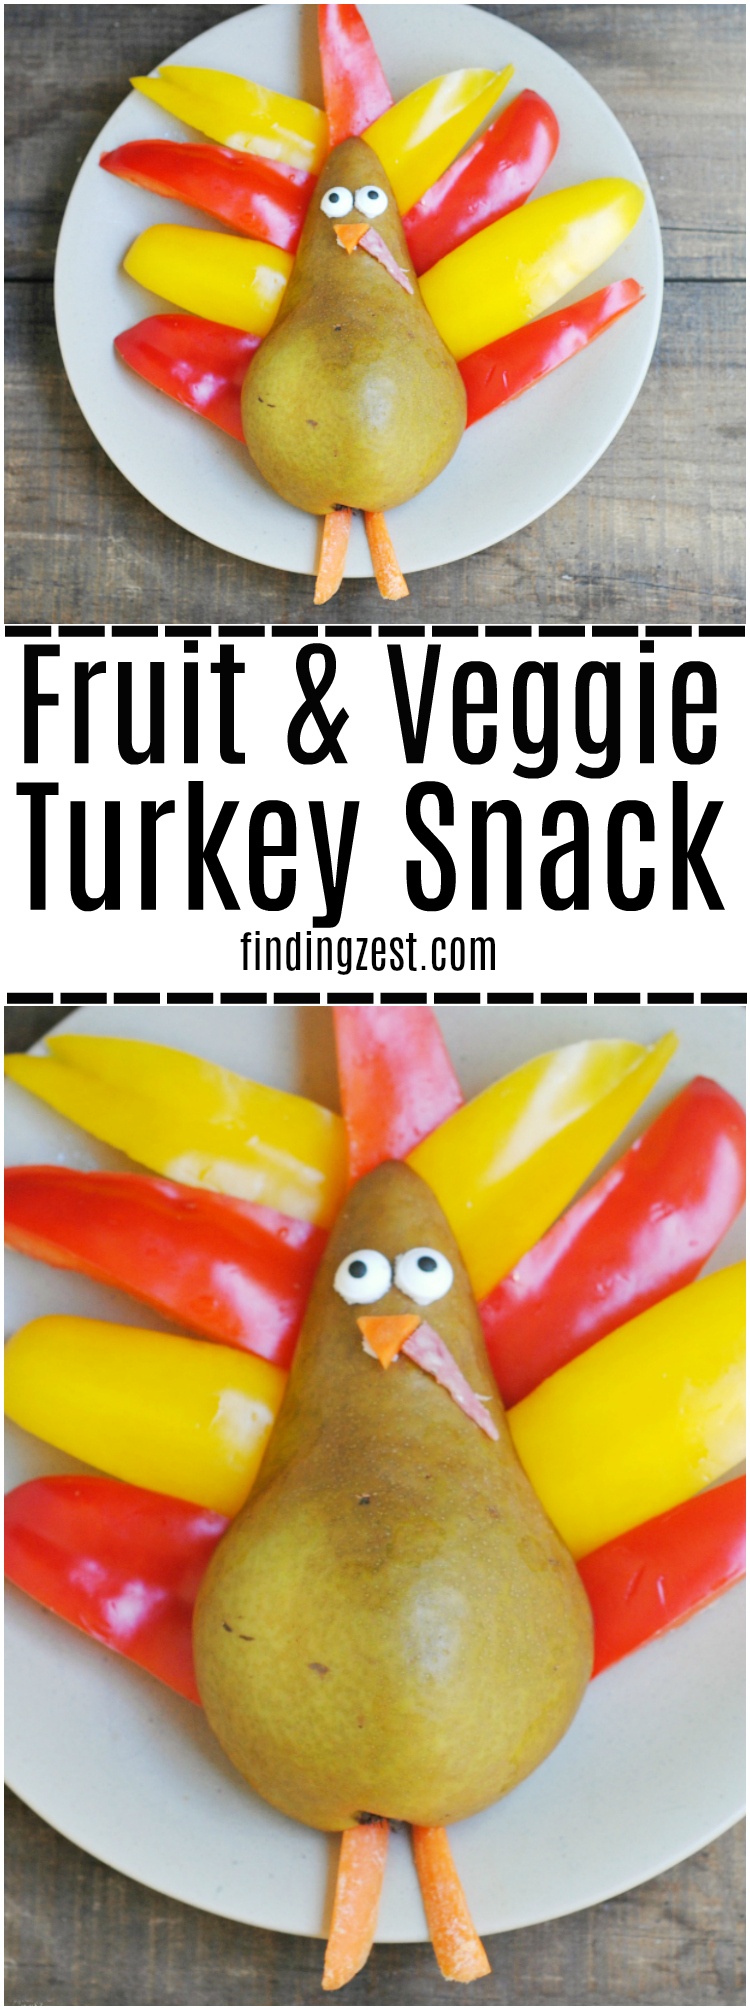 Make this easy fruit and veggie turkey snack for Thanksgiving! Makes a great healthy food art activity or snack option for kids.